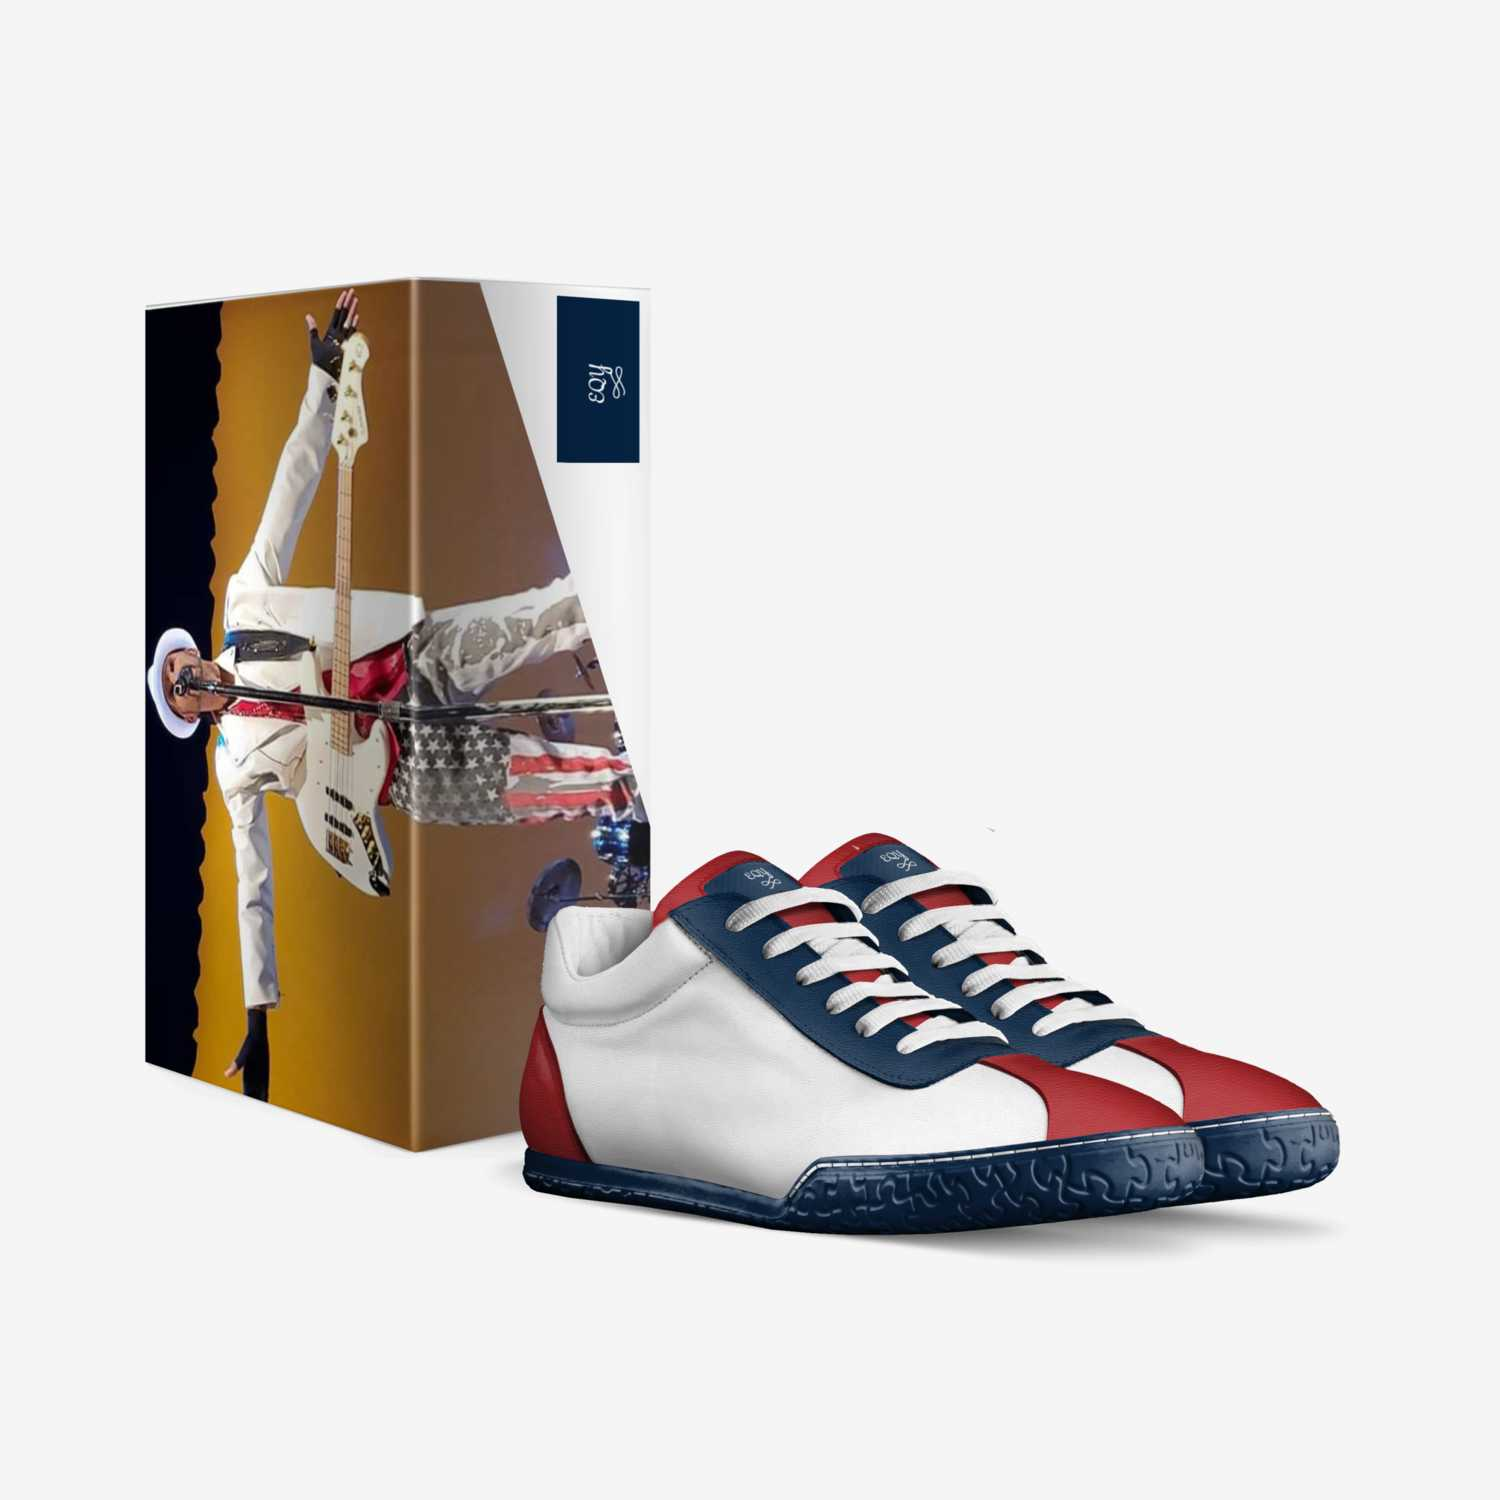 EQY  custom made in Italy shoes by Eric Eq Young | Box view